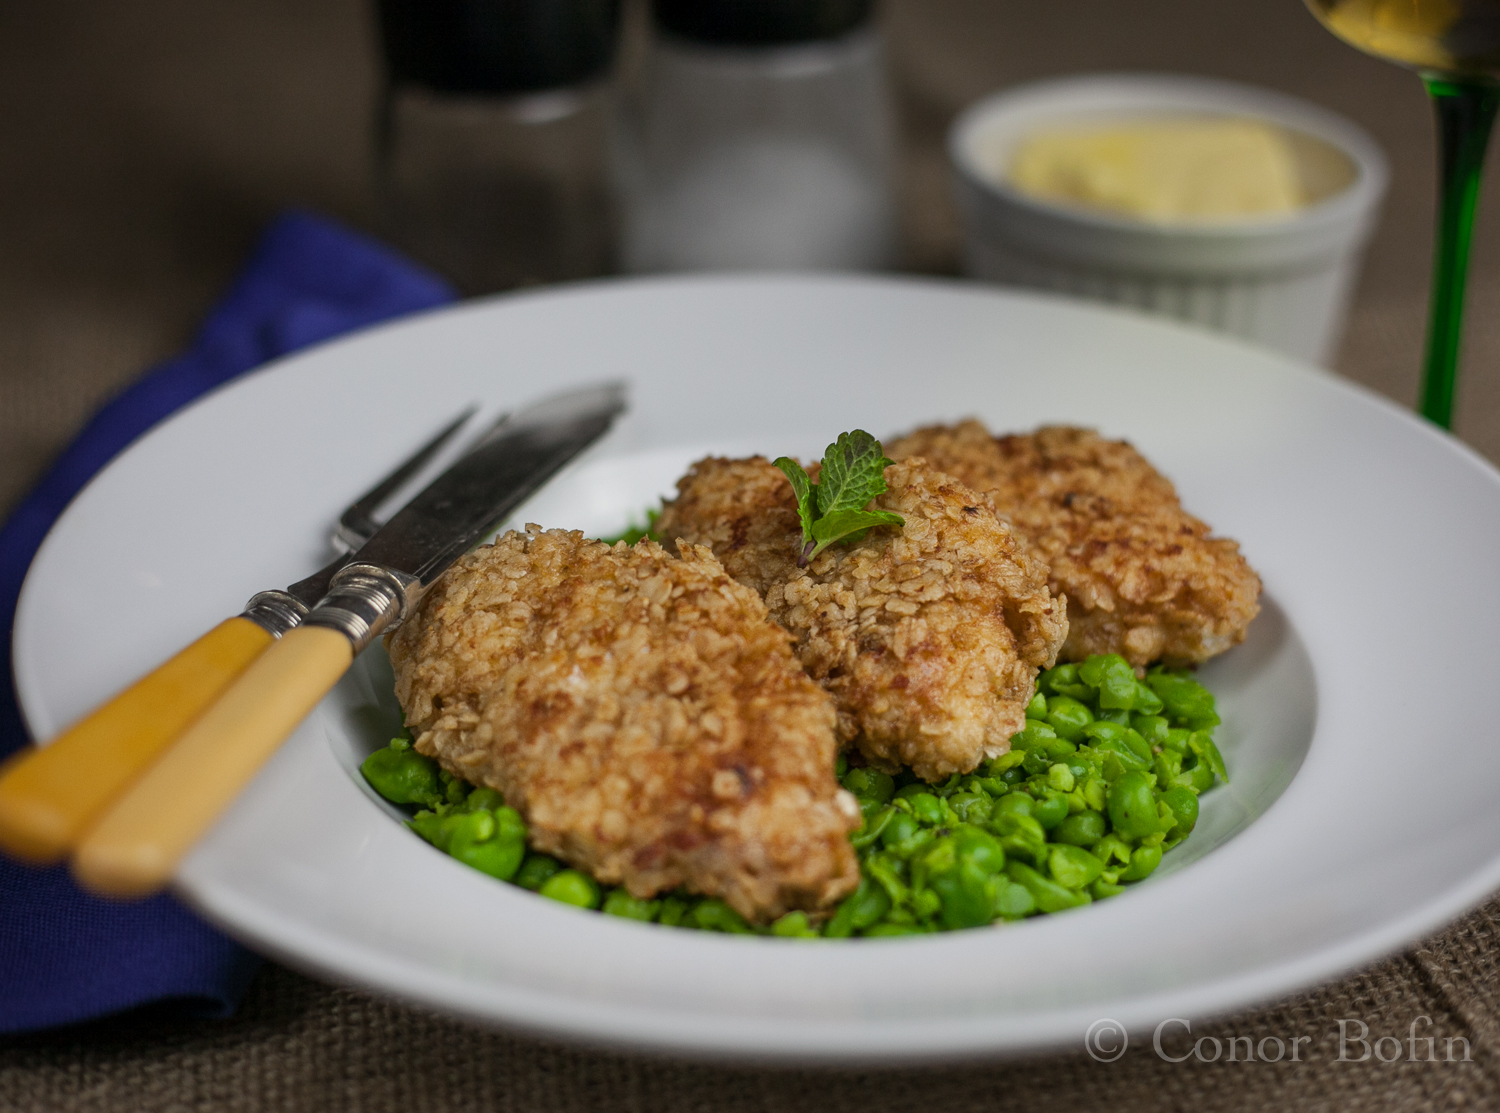 Monkfish in oats (13 of 13)